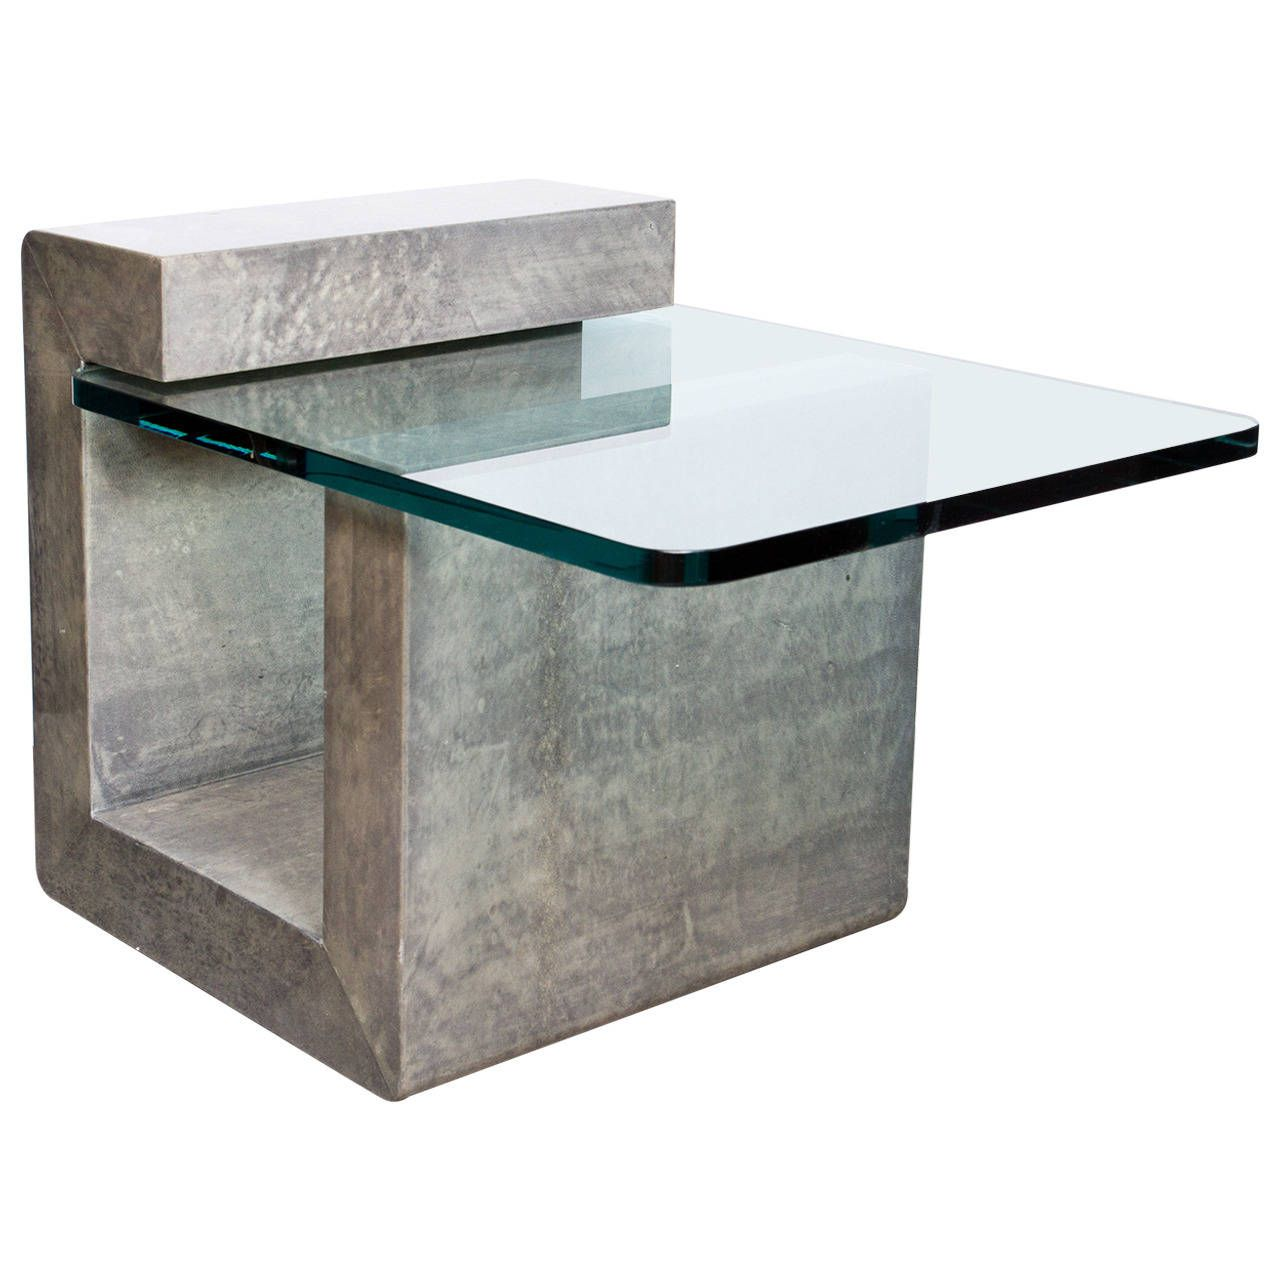 Modernist lacquered parchment side table tables unique for Small designer tables